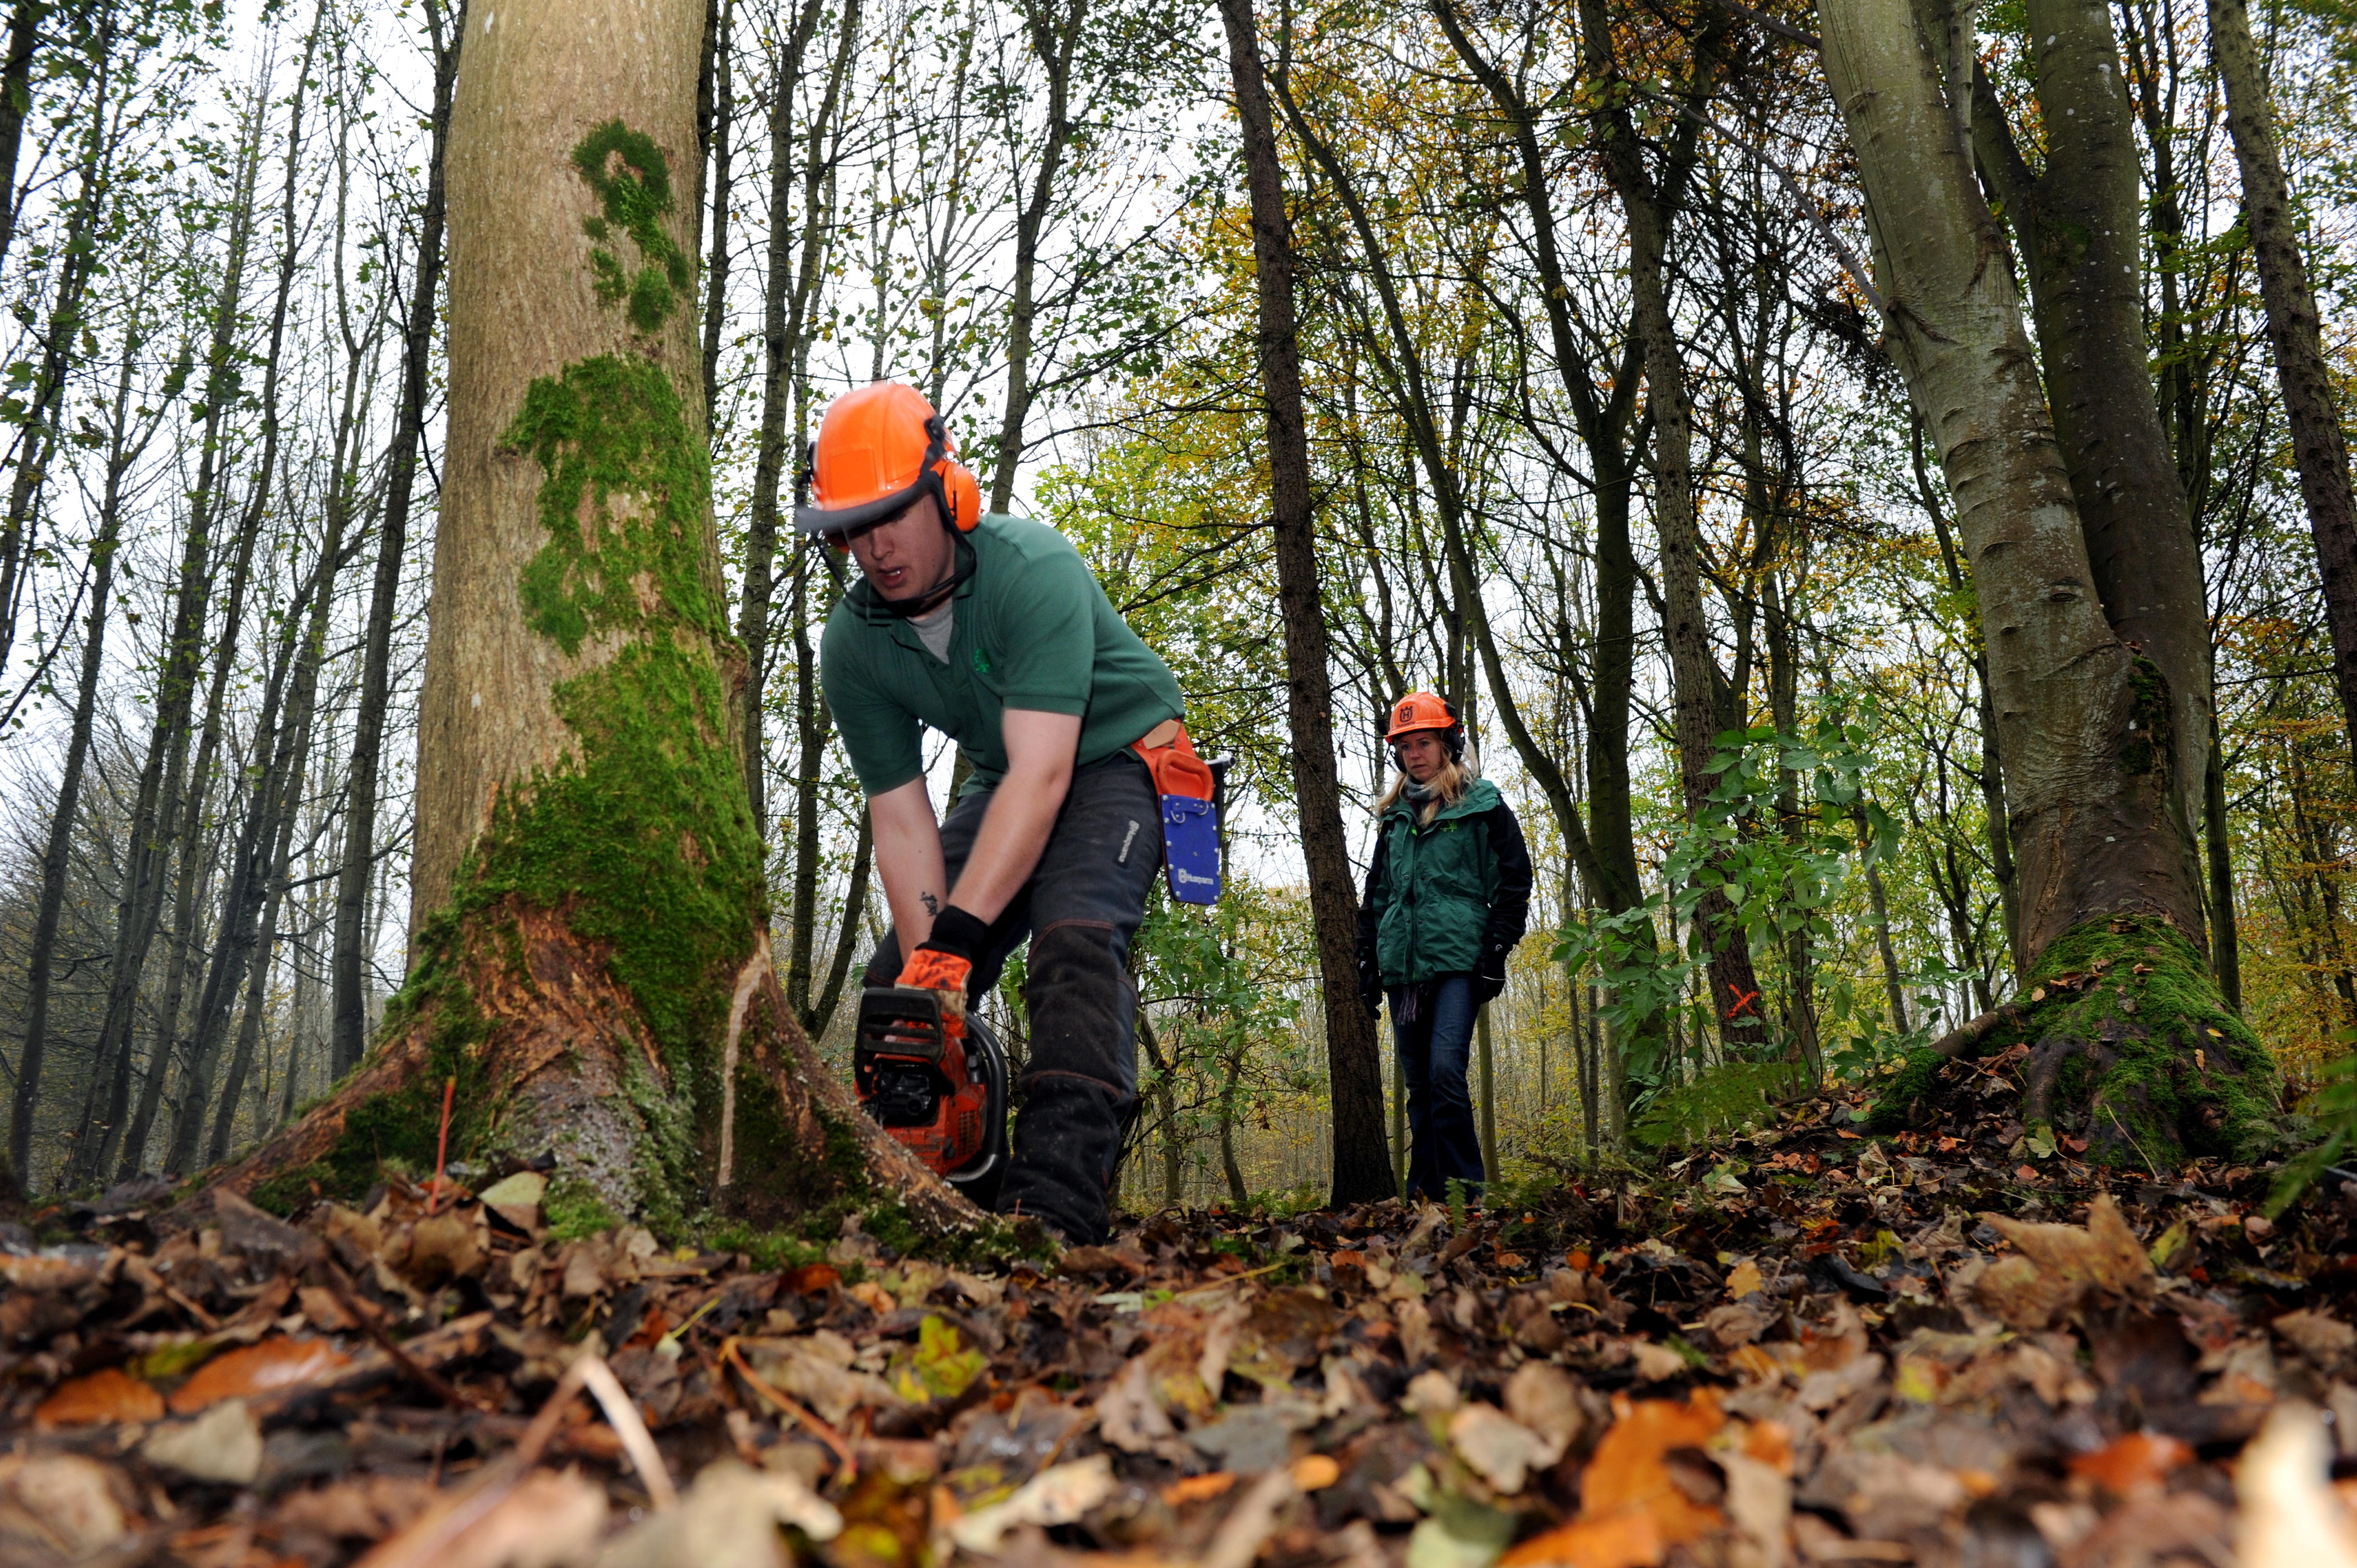 Tree are being cut down after attracting Dutch Elm disease